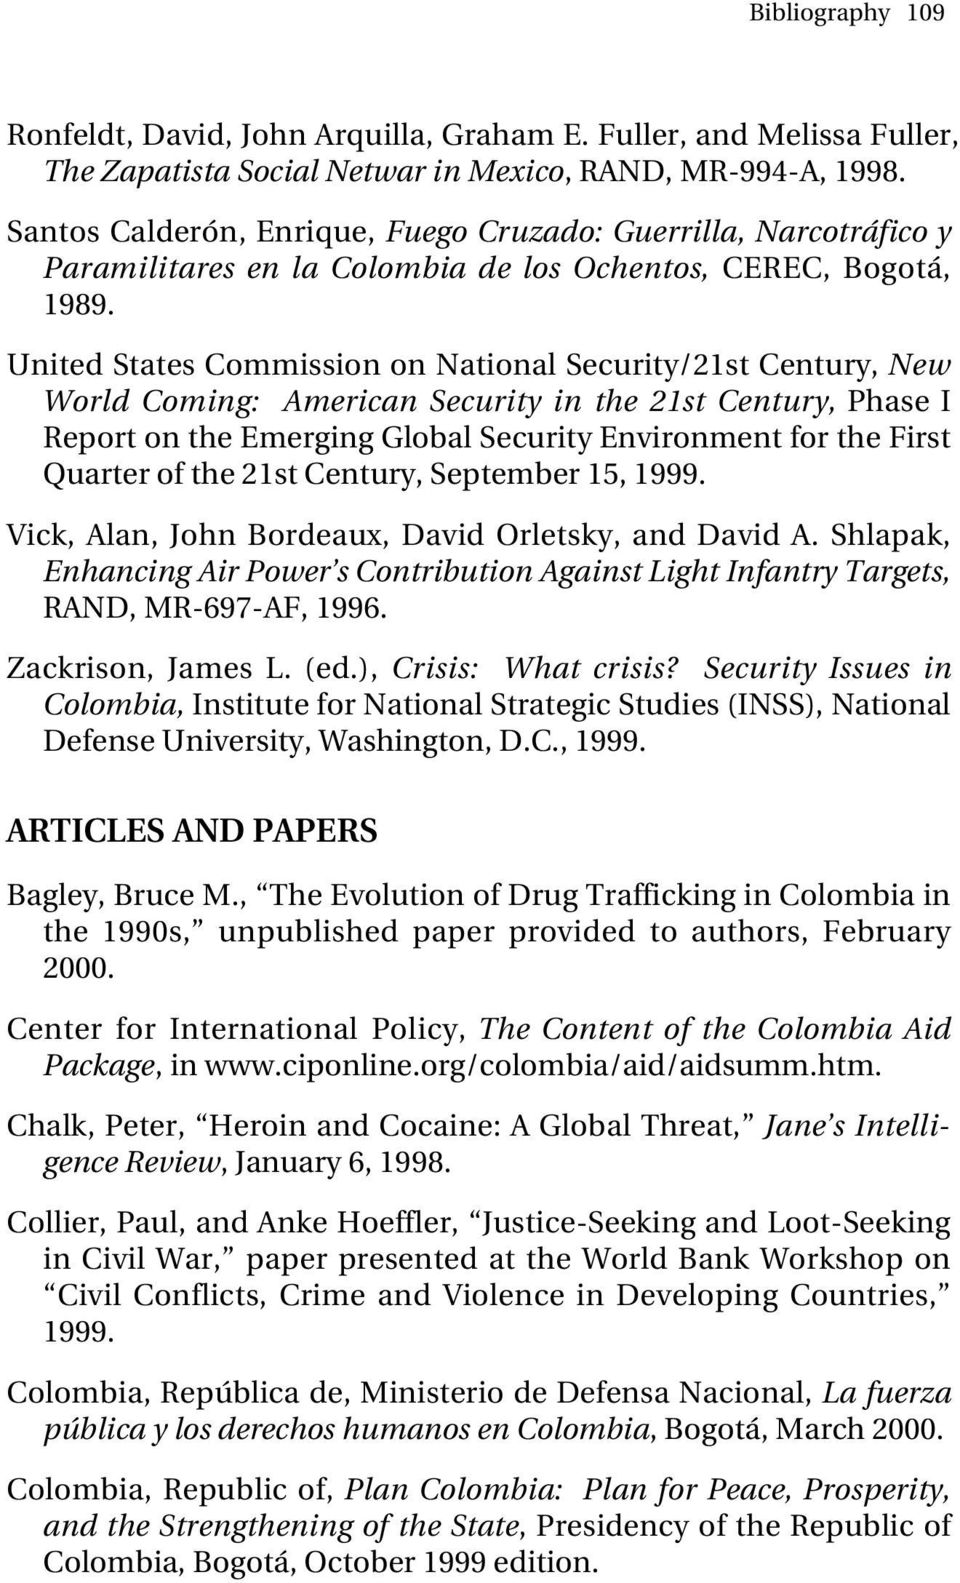 United States Commission on National Security/21st Century, New World Coming: American Security in the 21st Century, Phase I Report on the Emerging Global Security Environment for the First Quarter